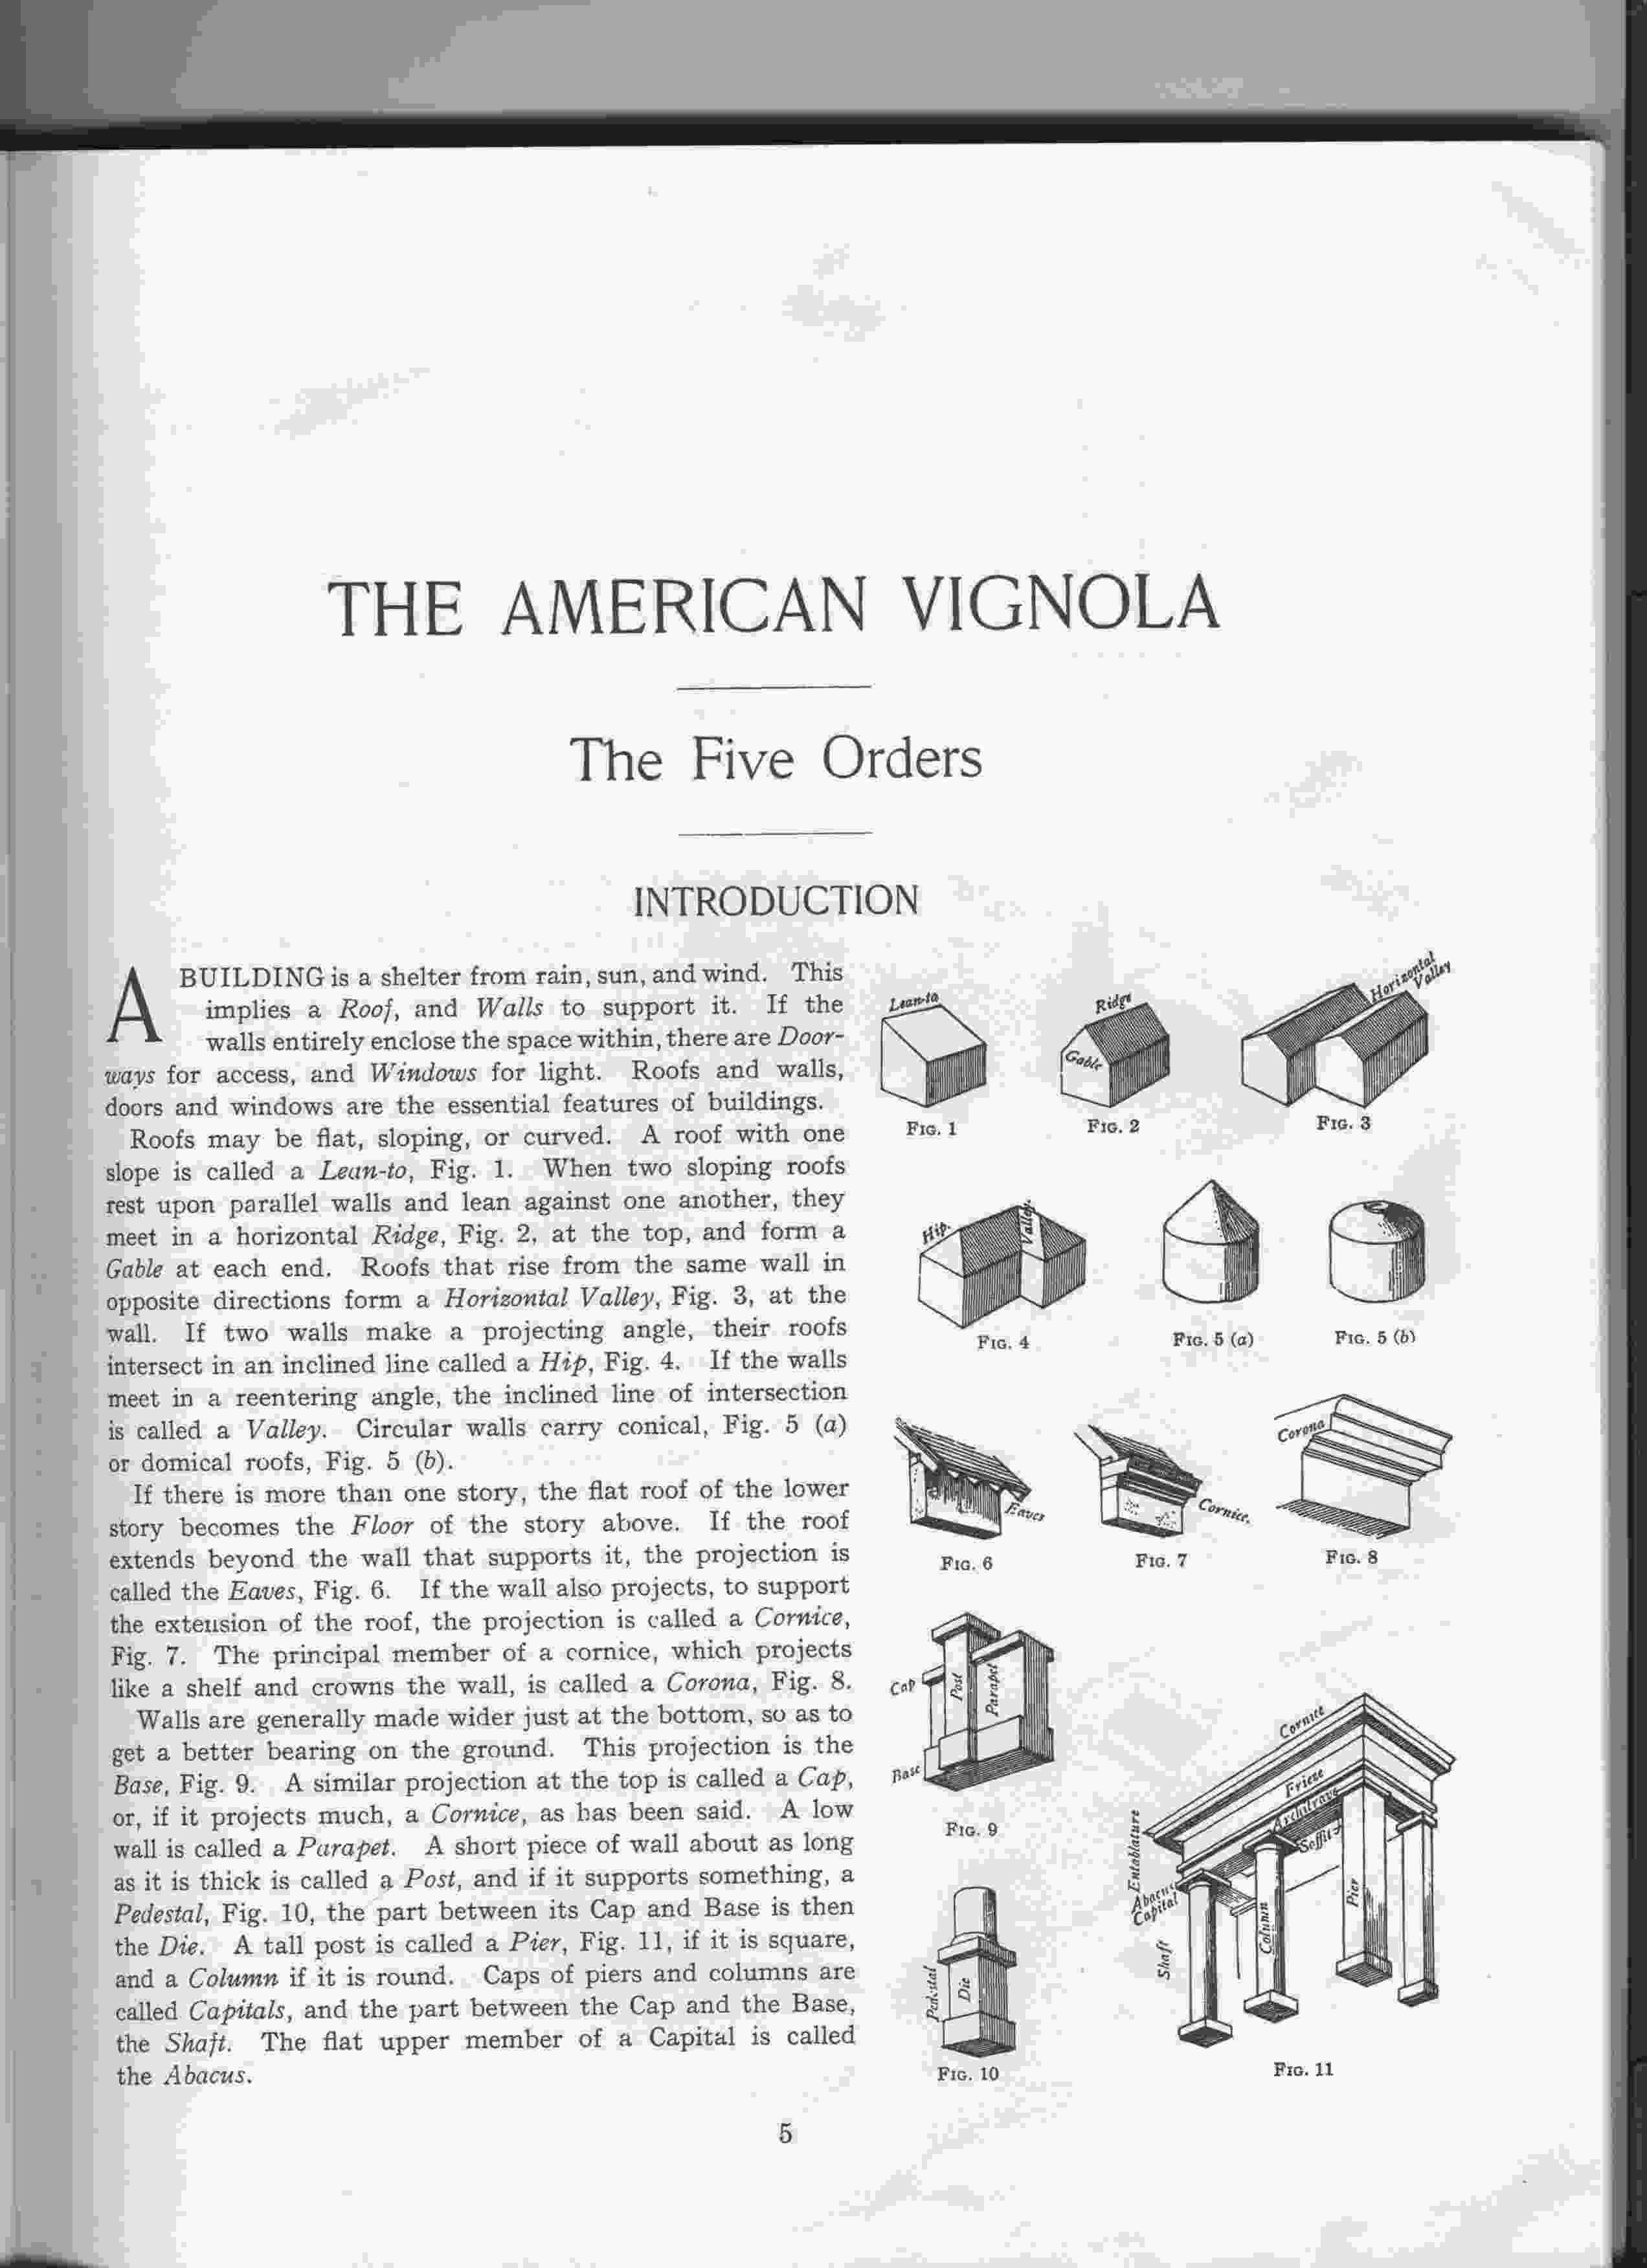 By Brians Request, Mantel, Over Mantel-american-vignola-page-5.jpg